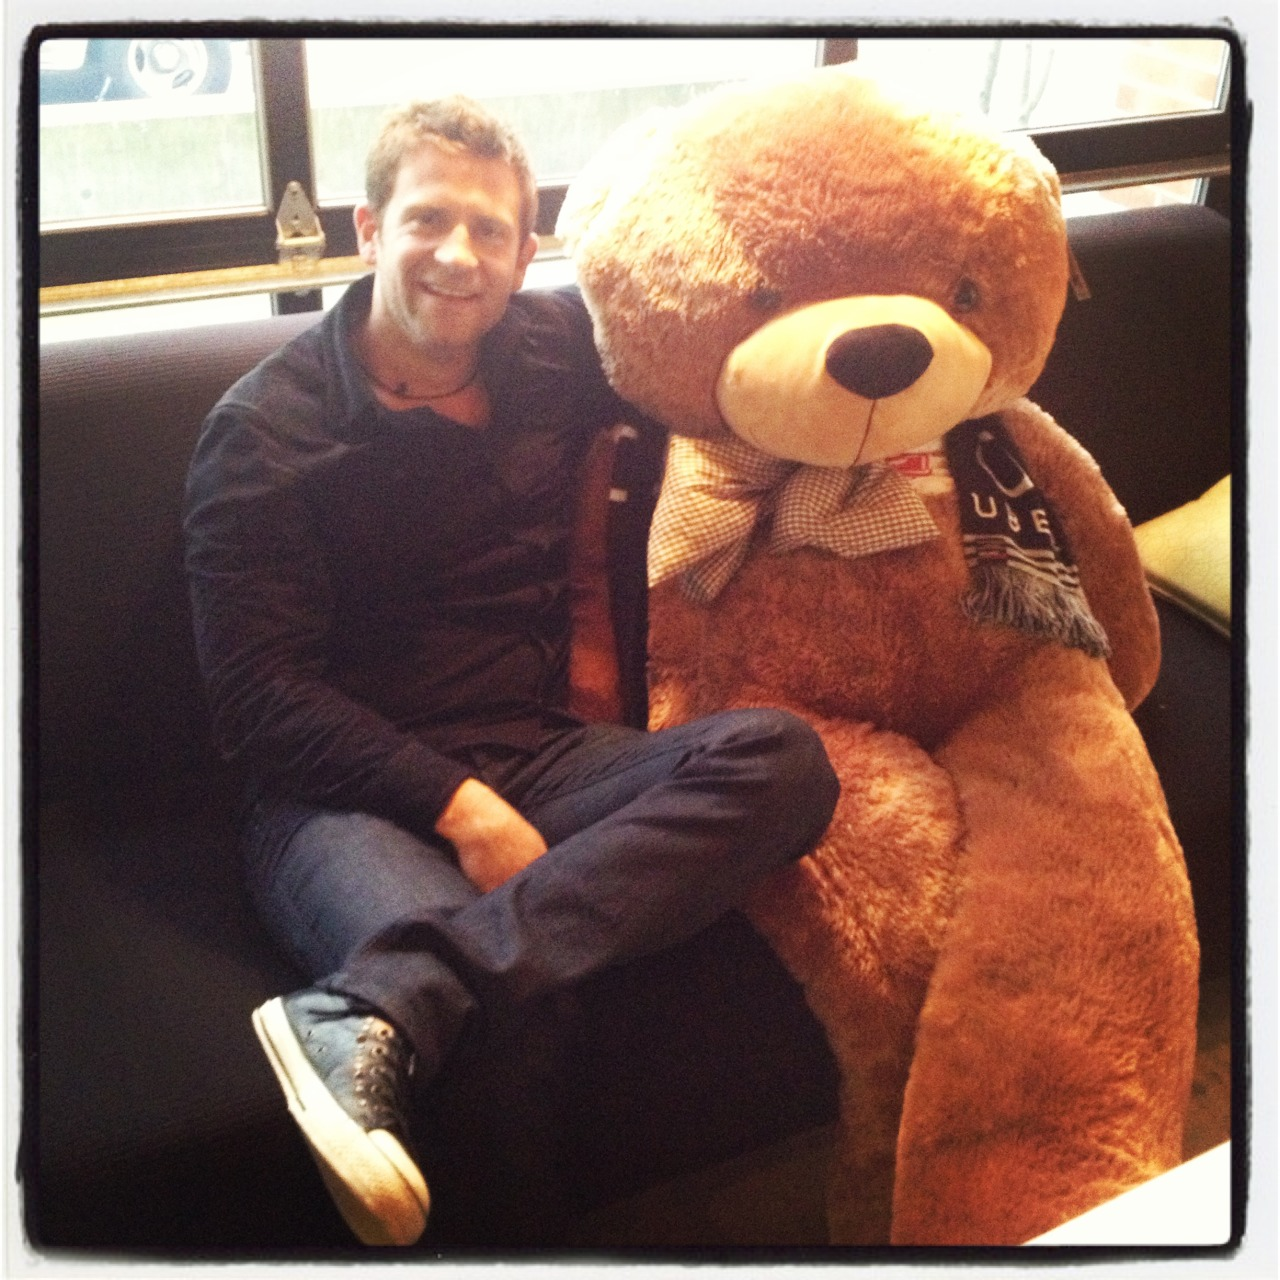 Mr. Chase Jarvis hangin' out with one of our Ubears in Seattle!